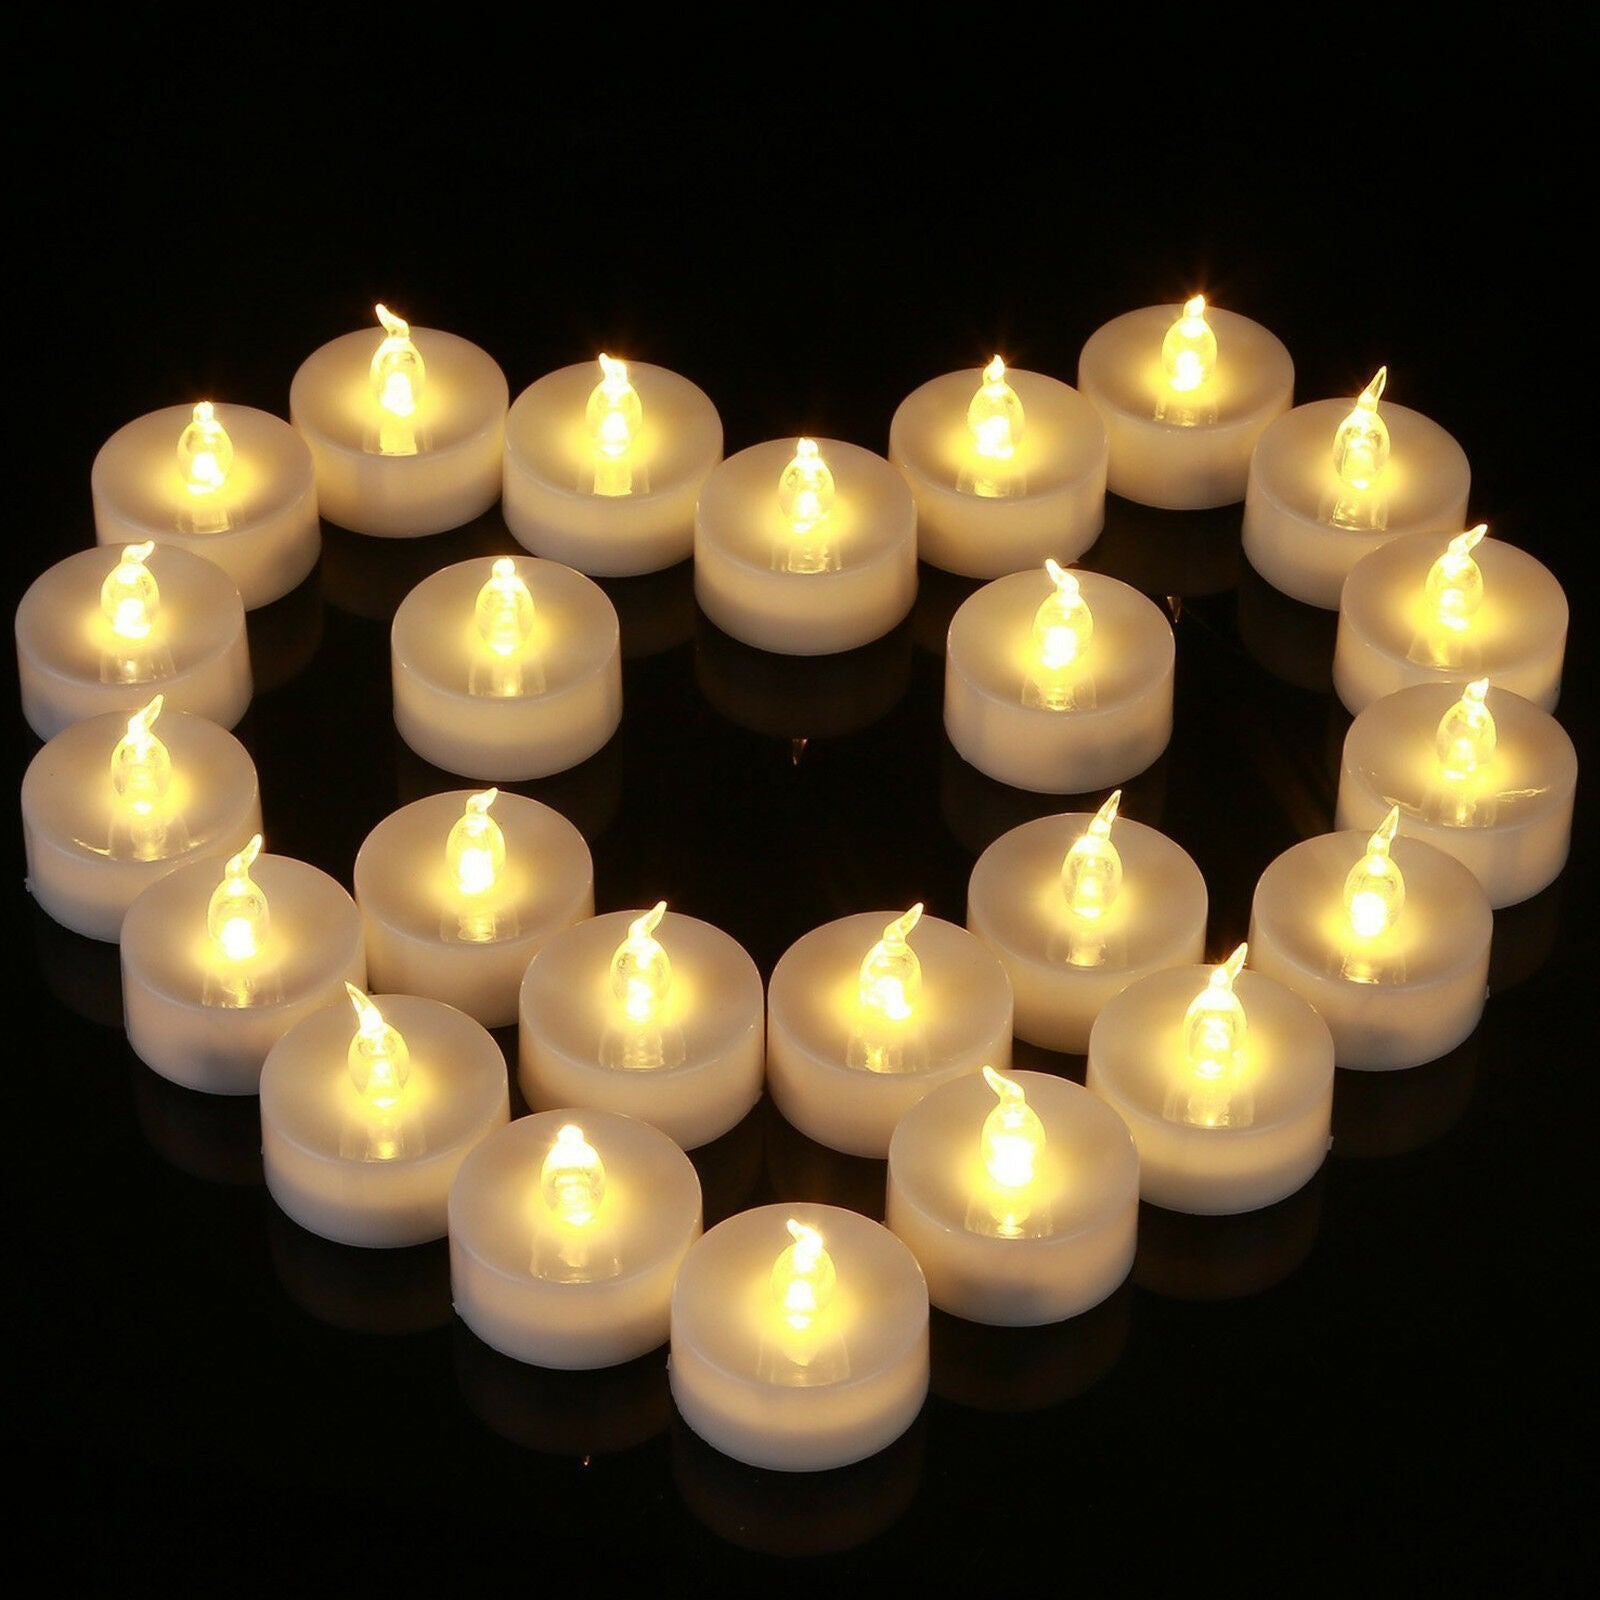 12Pcs Battery Operated LED Tea Lights Candles Flameless Flickering